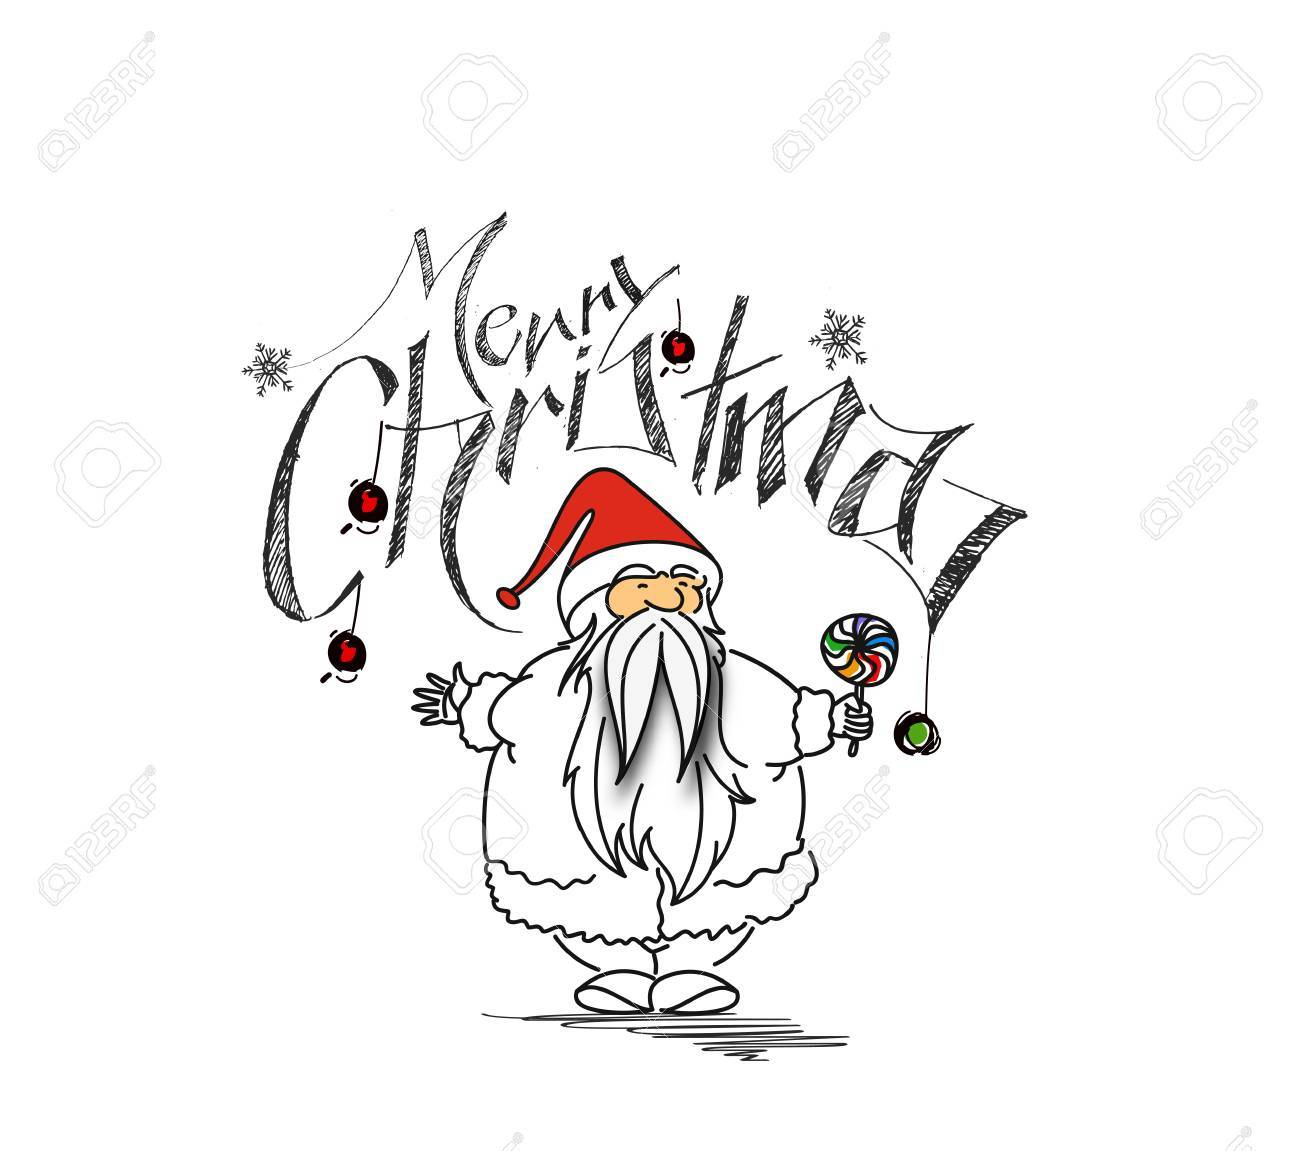 Christmas Cartoon Drawings.Merry Christmas Cartoon Style Hand Sketchy Drawing Of A Funny